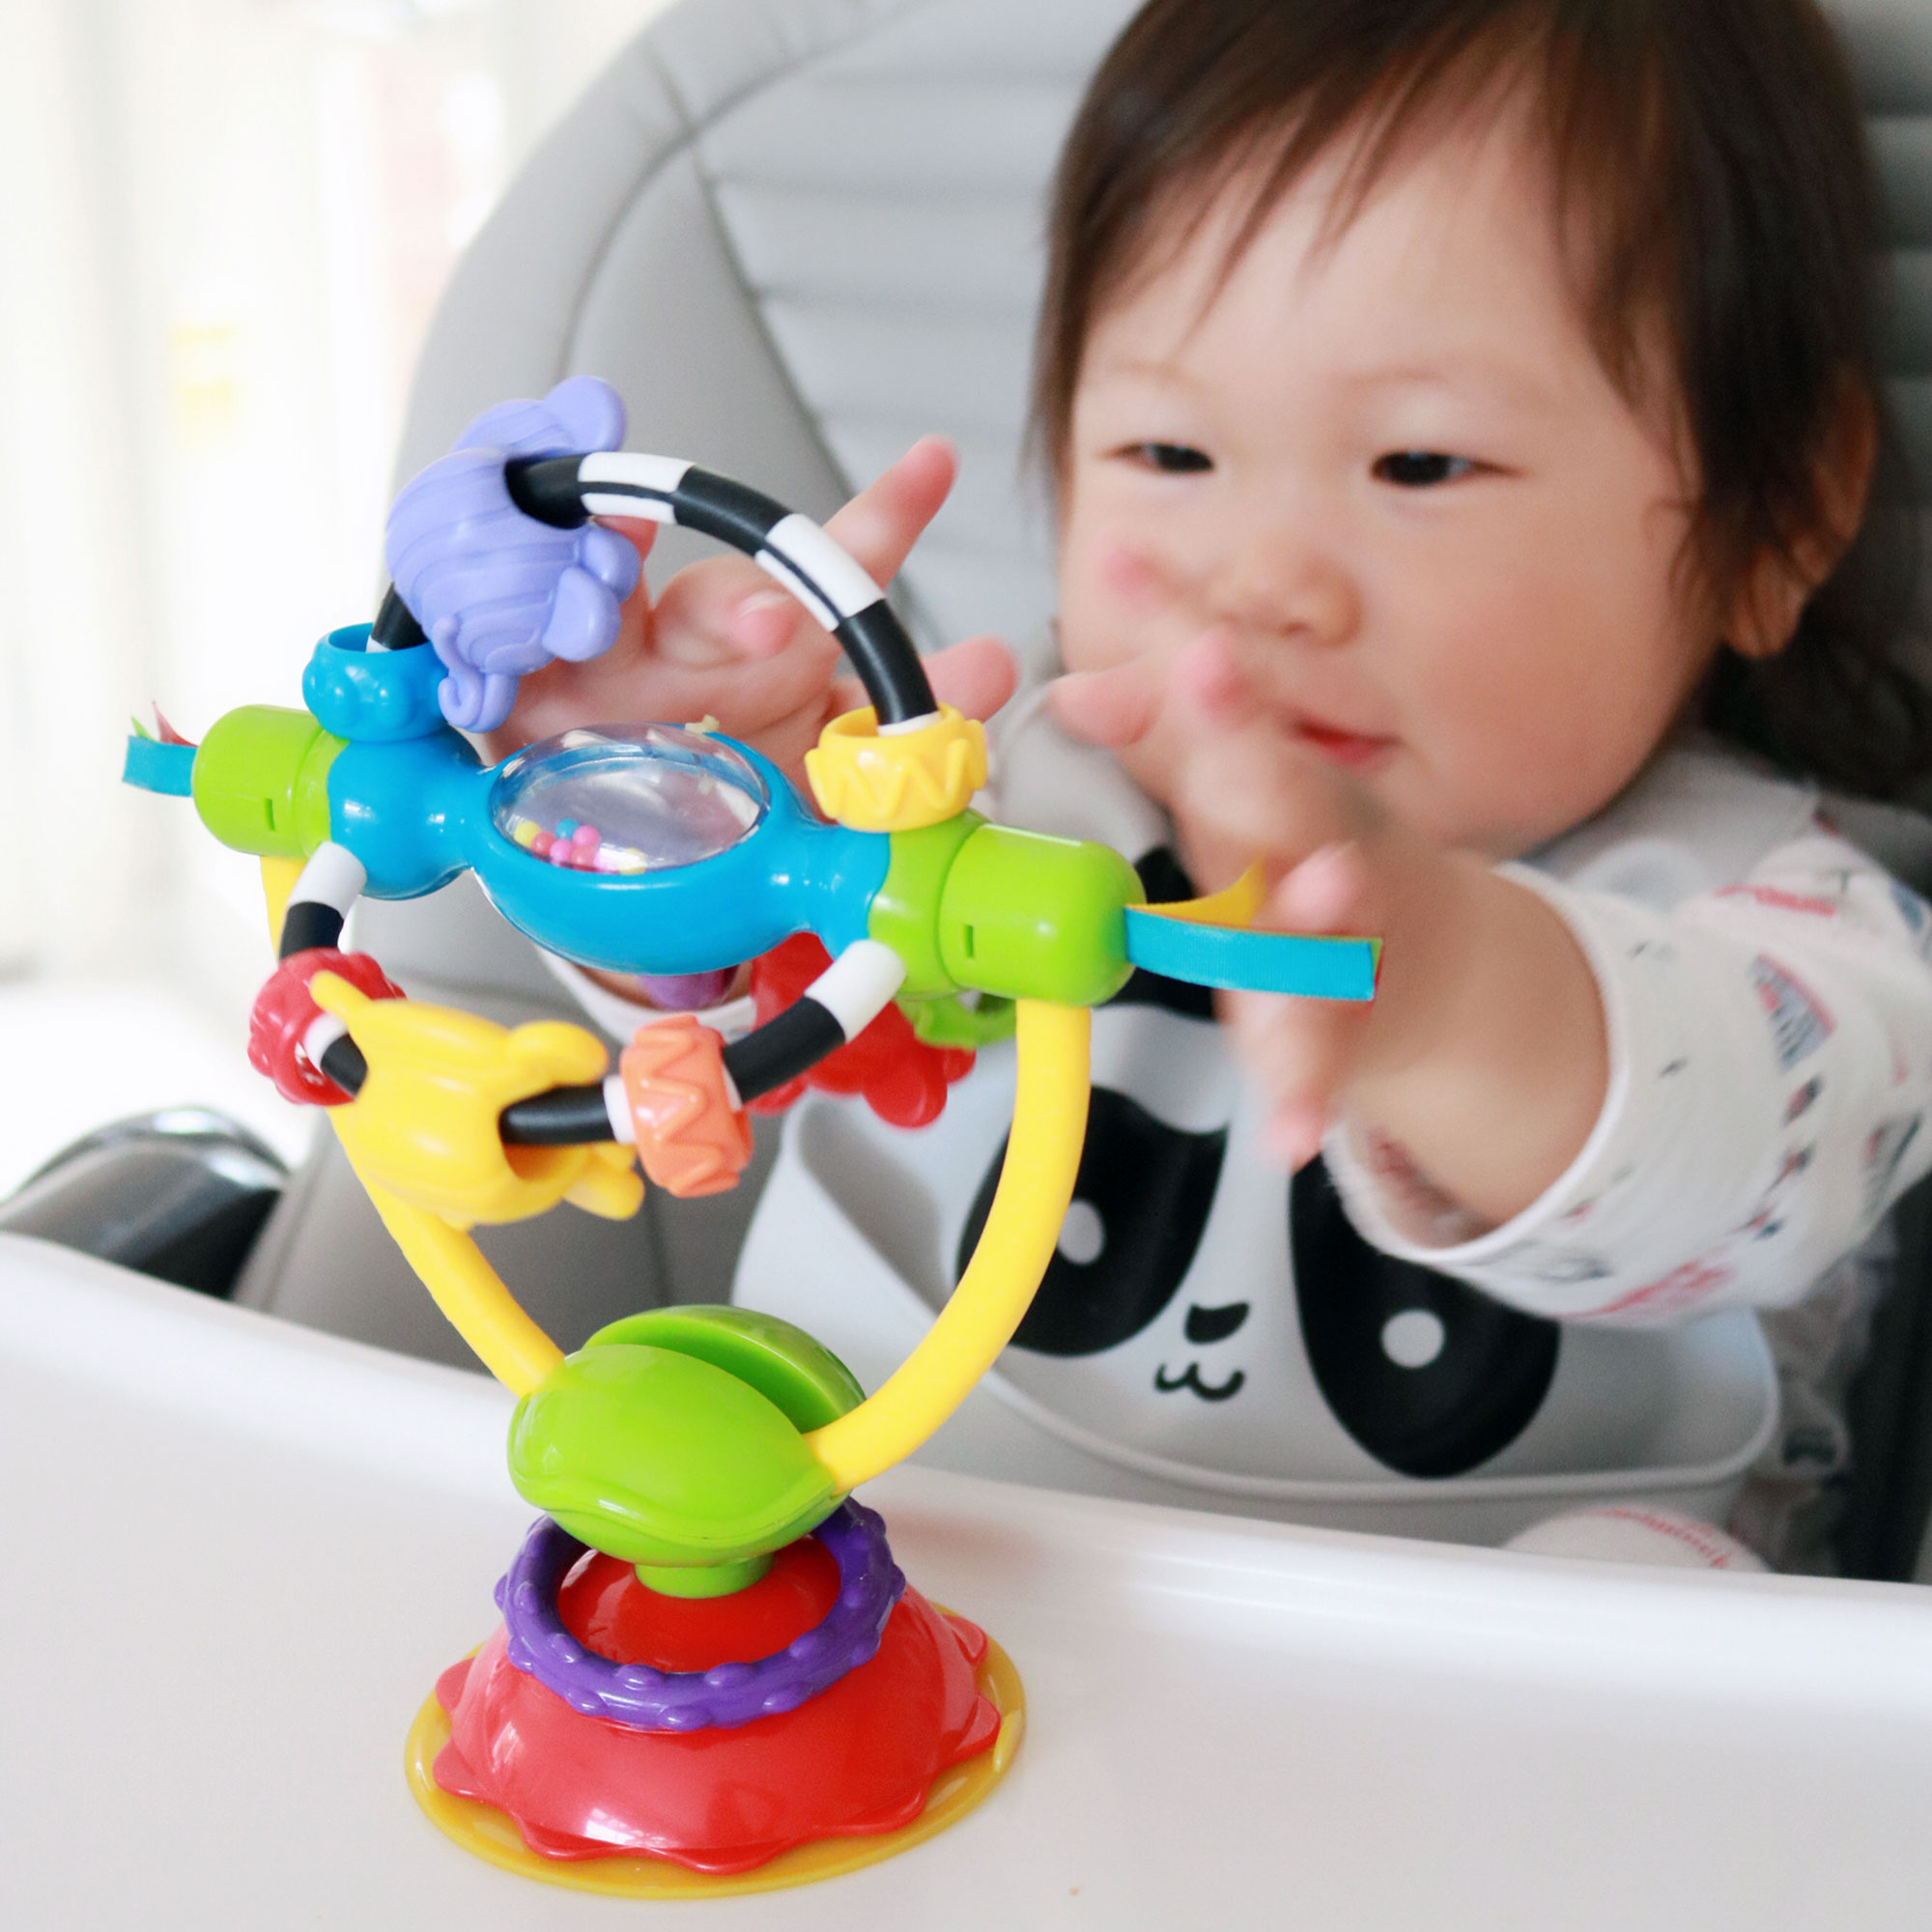 High Chair Spinning Toy Playgro International